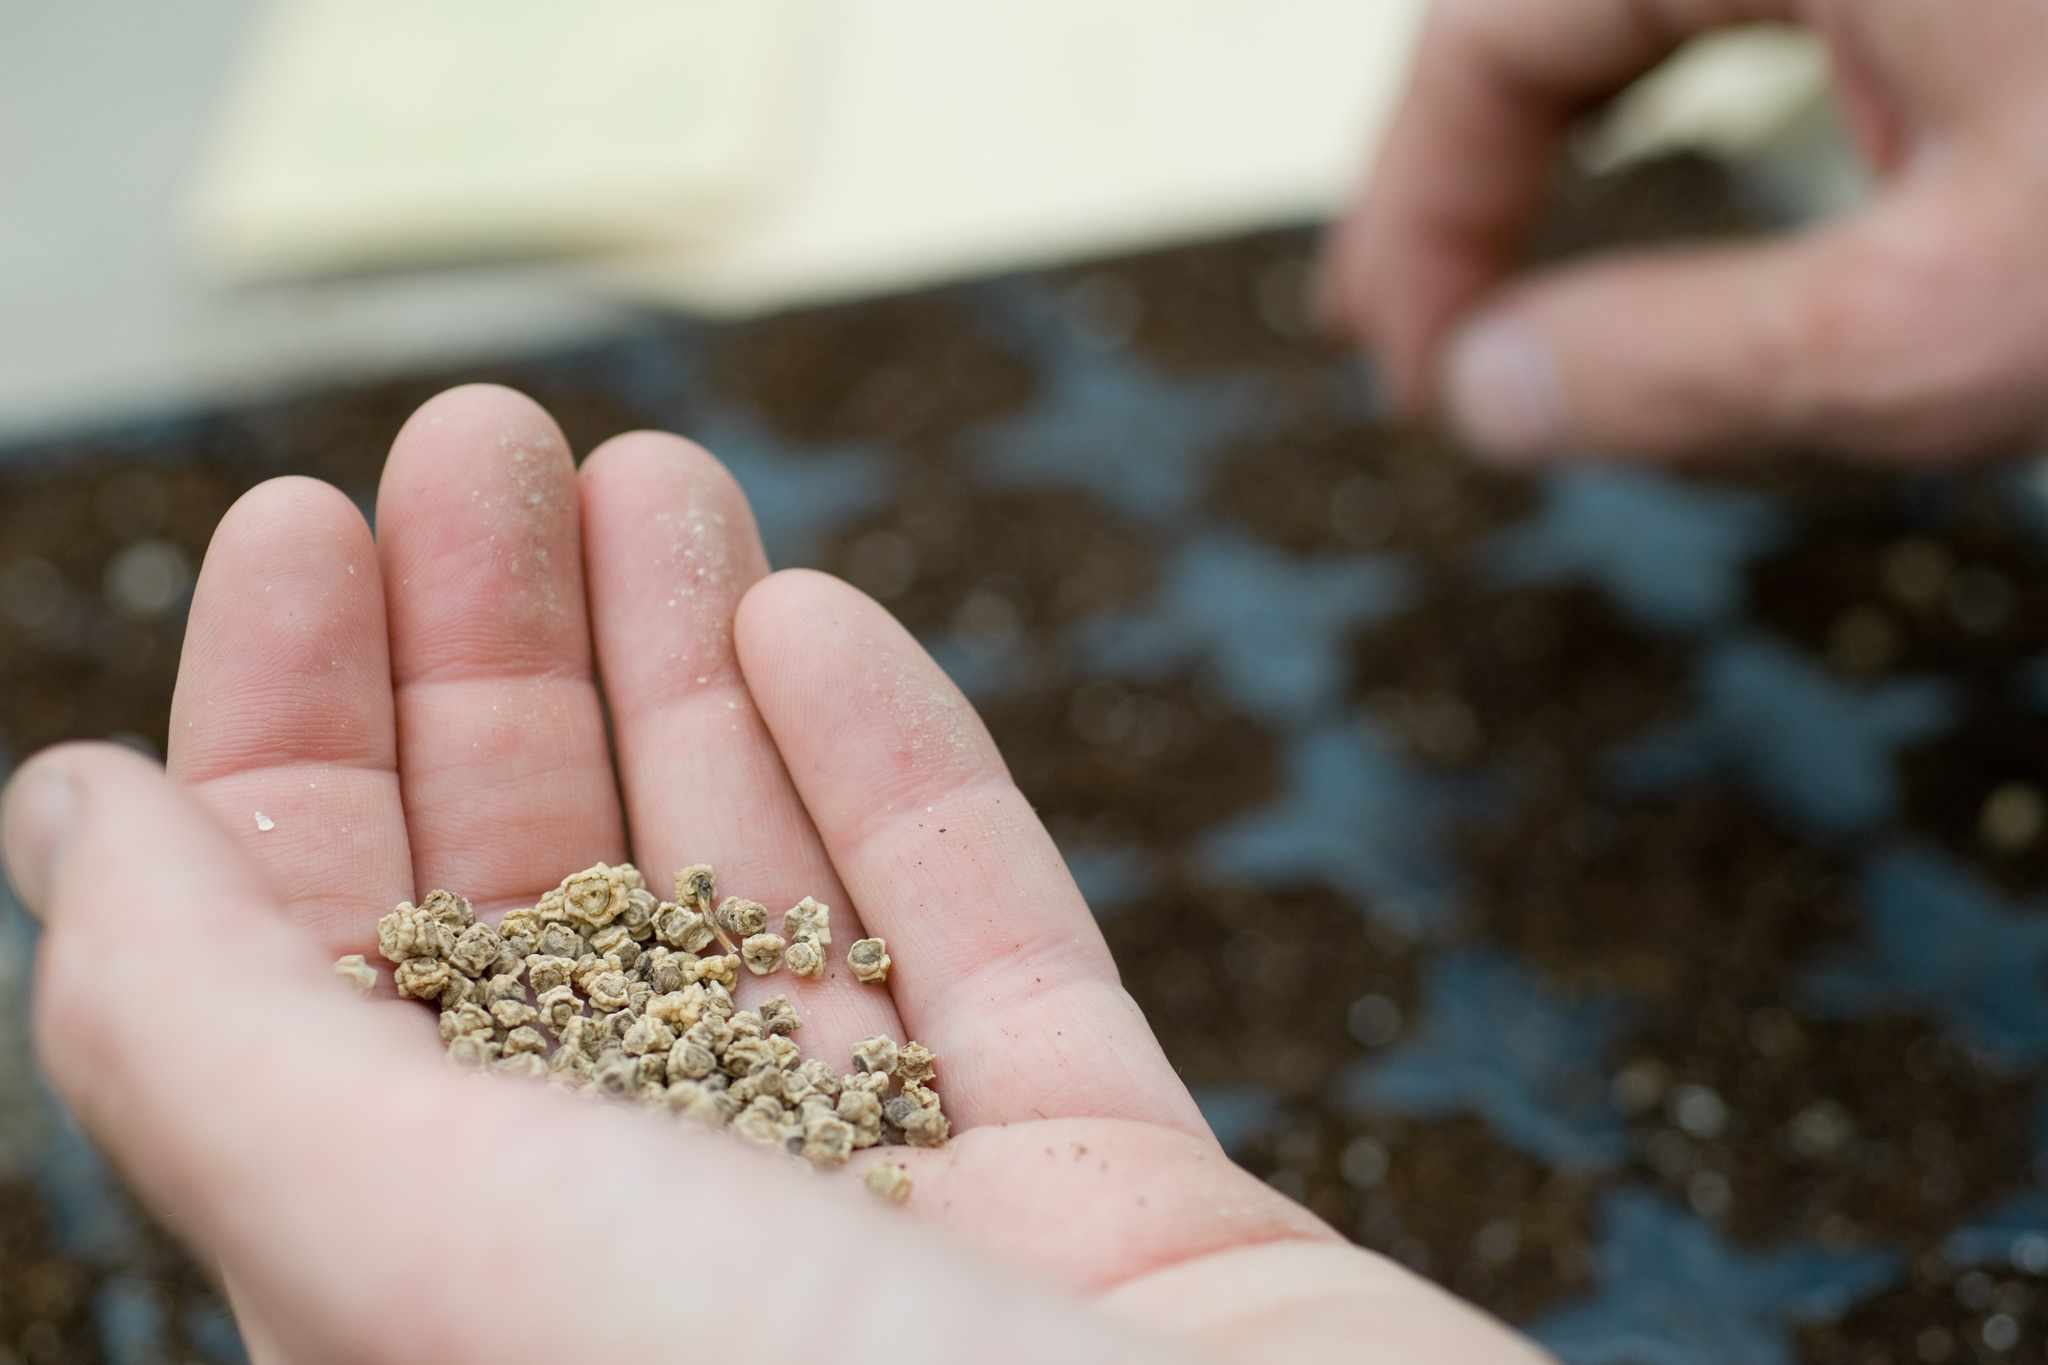 Sewing seeds into a seed tray